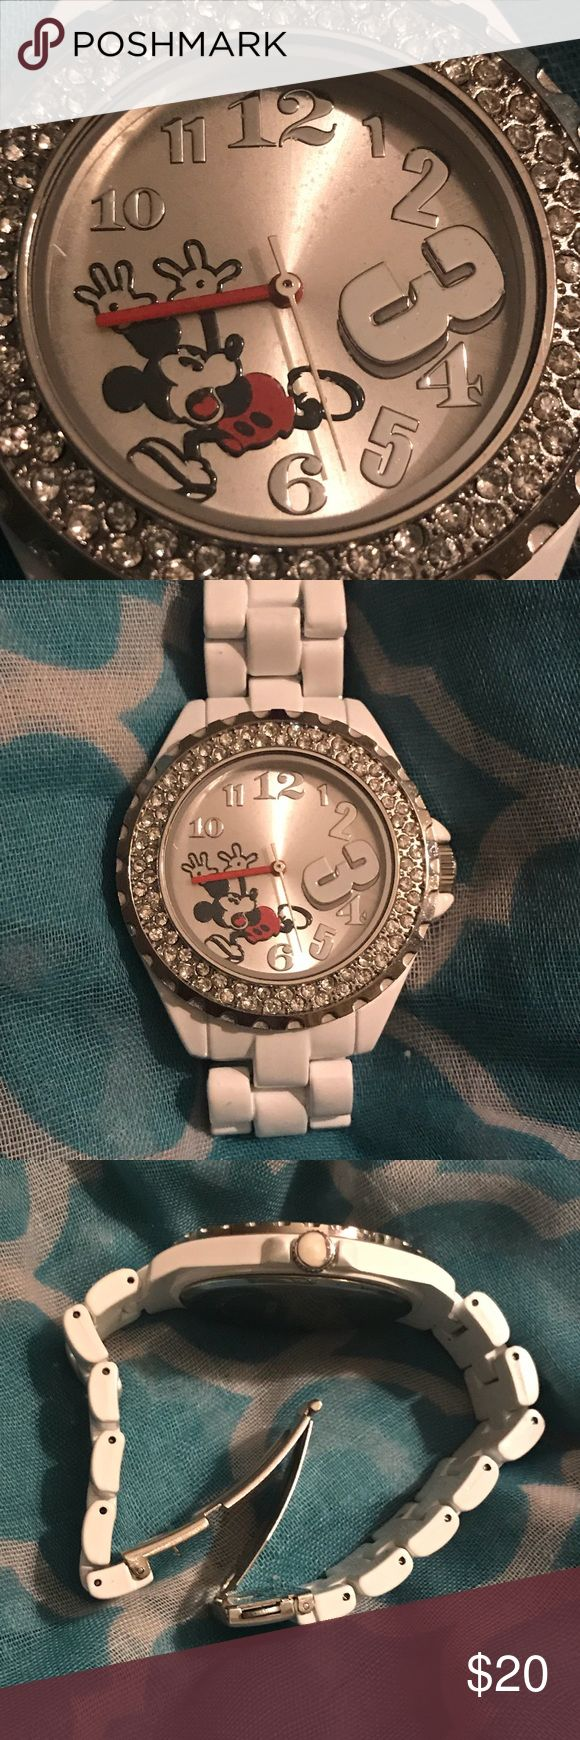 Disney Mickey Mouse Watch-Like New This white boyfriend watch by Disney has Mickey on the front and a sparkling bezel. It has a locking clasp and is w…